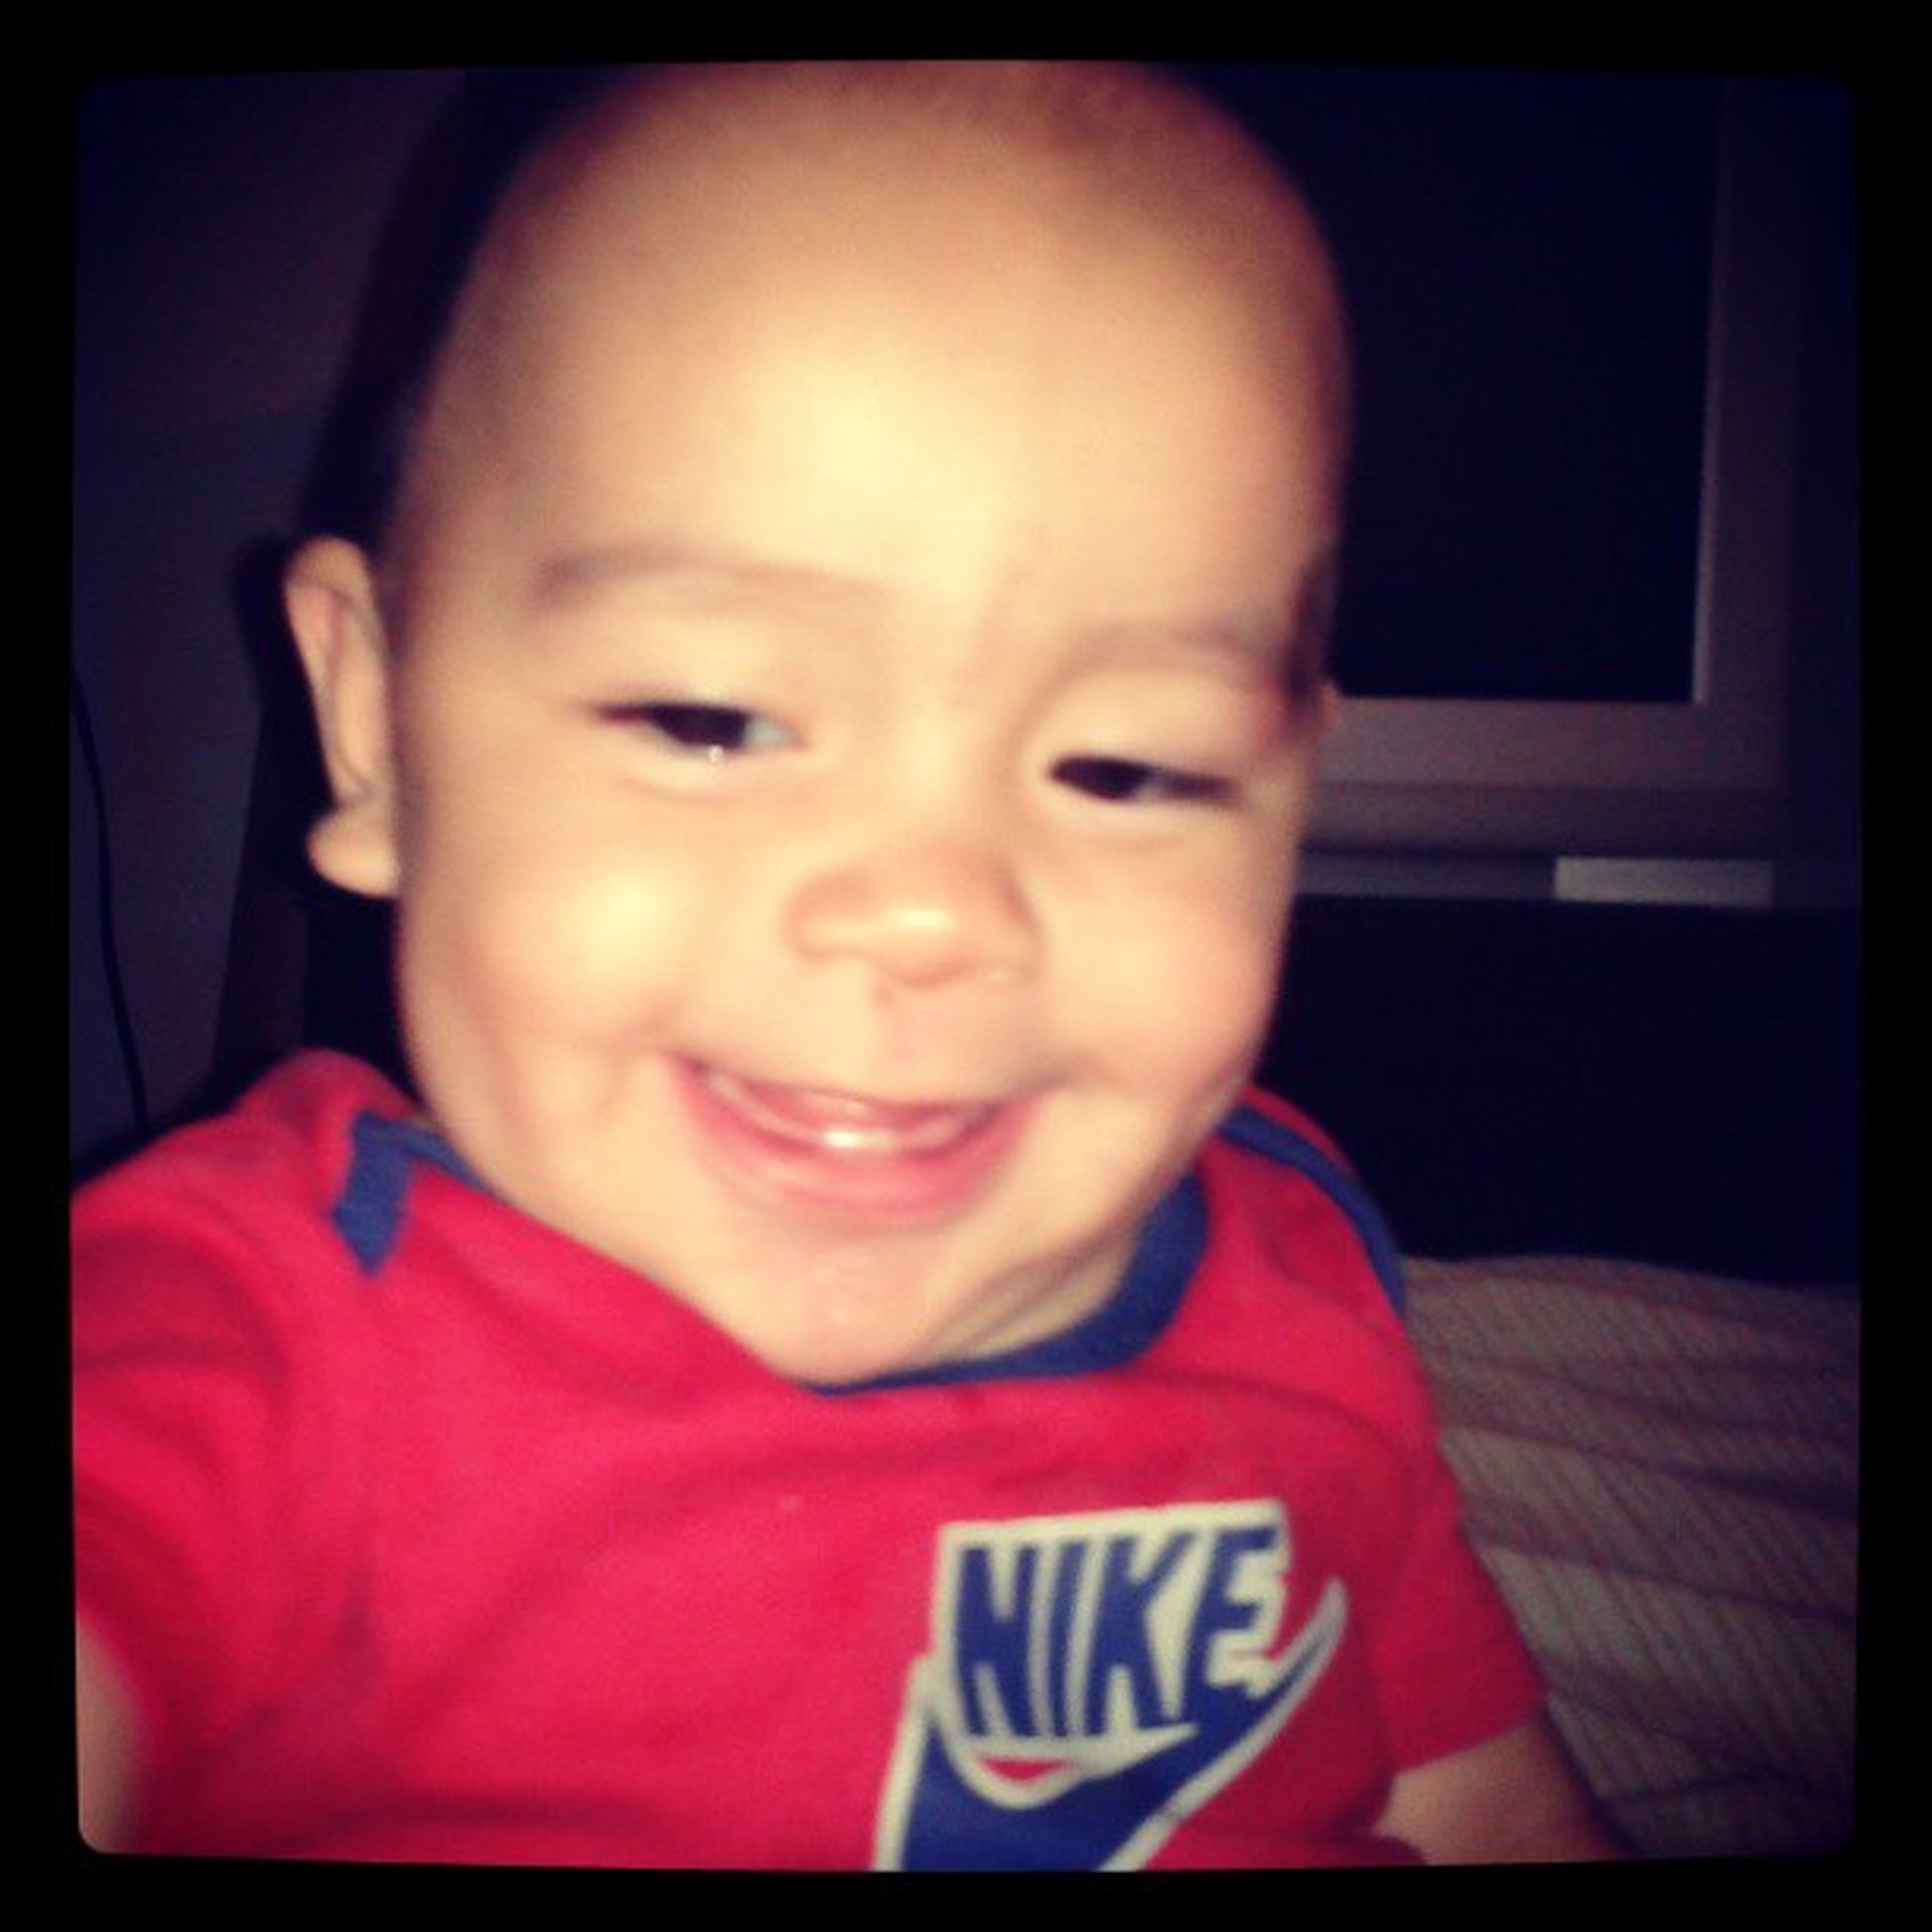 Mybaby Smile Cute Instaky sky baby tbt bw instababy mypic pic instapic funnyface awesome aquinelose